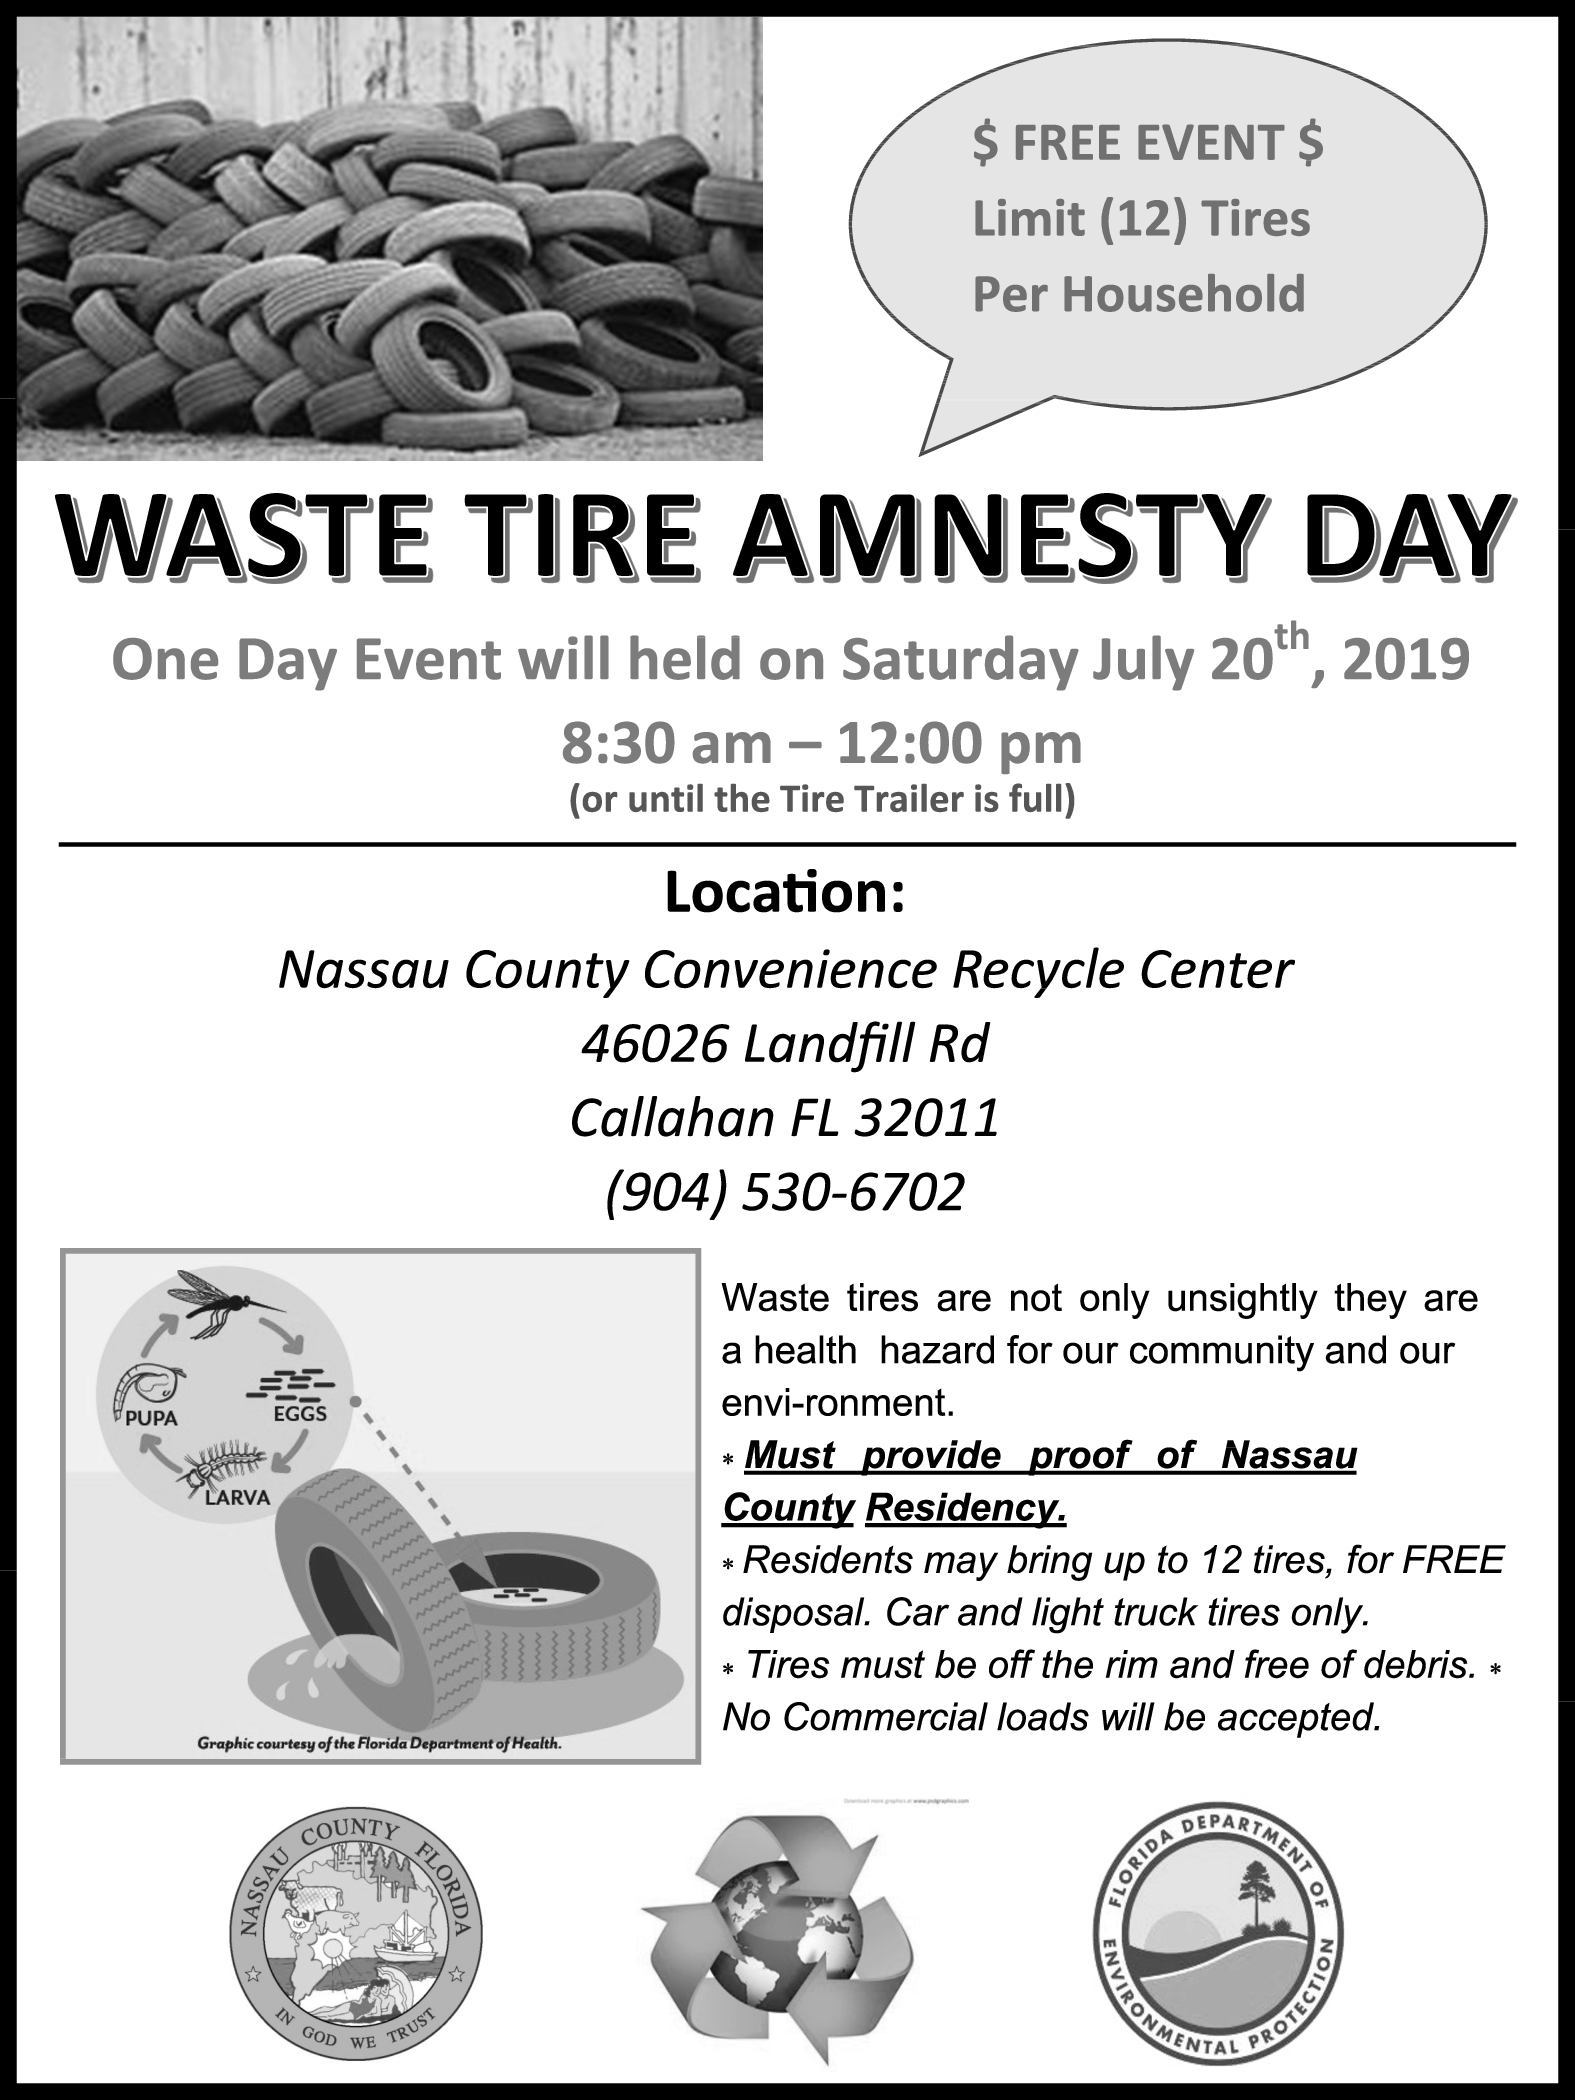 Waste Tire Amnesty Day in Callahan, FL, Trash Services